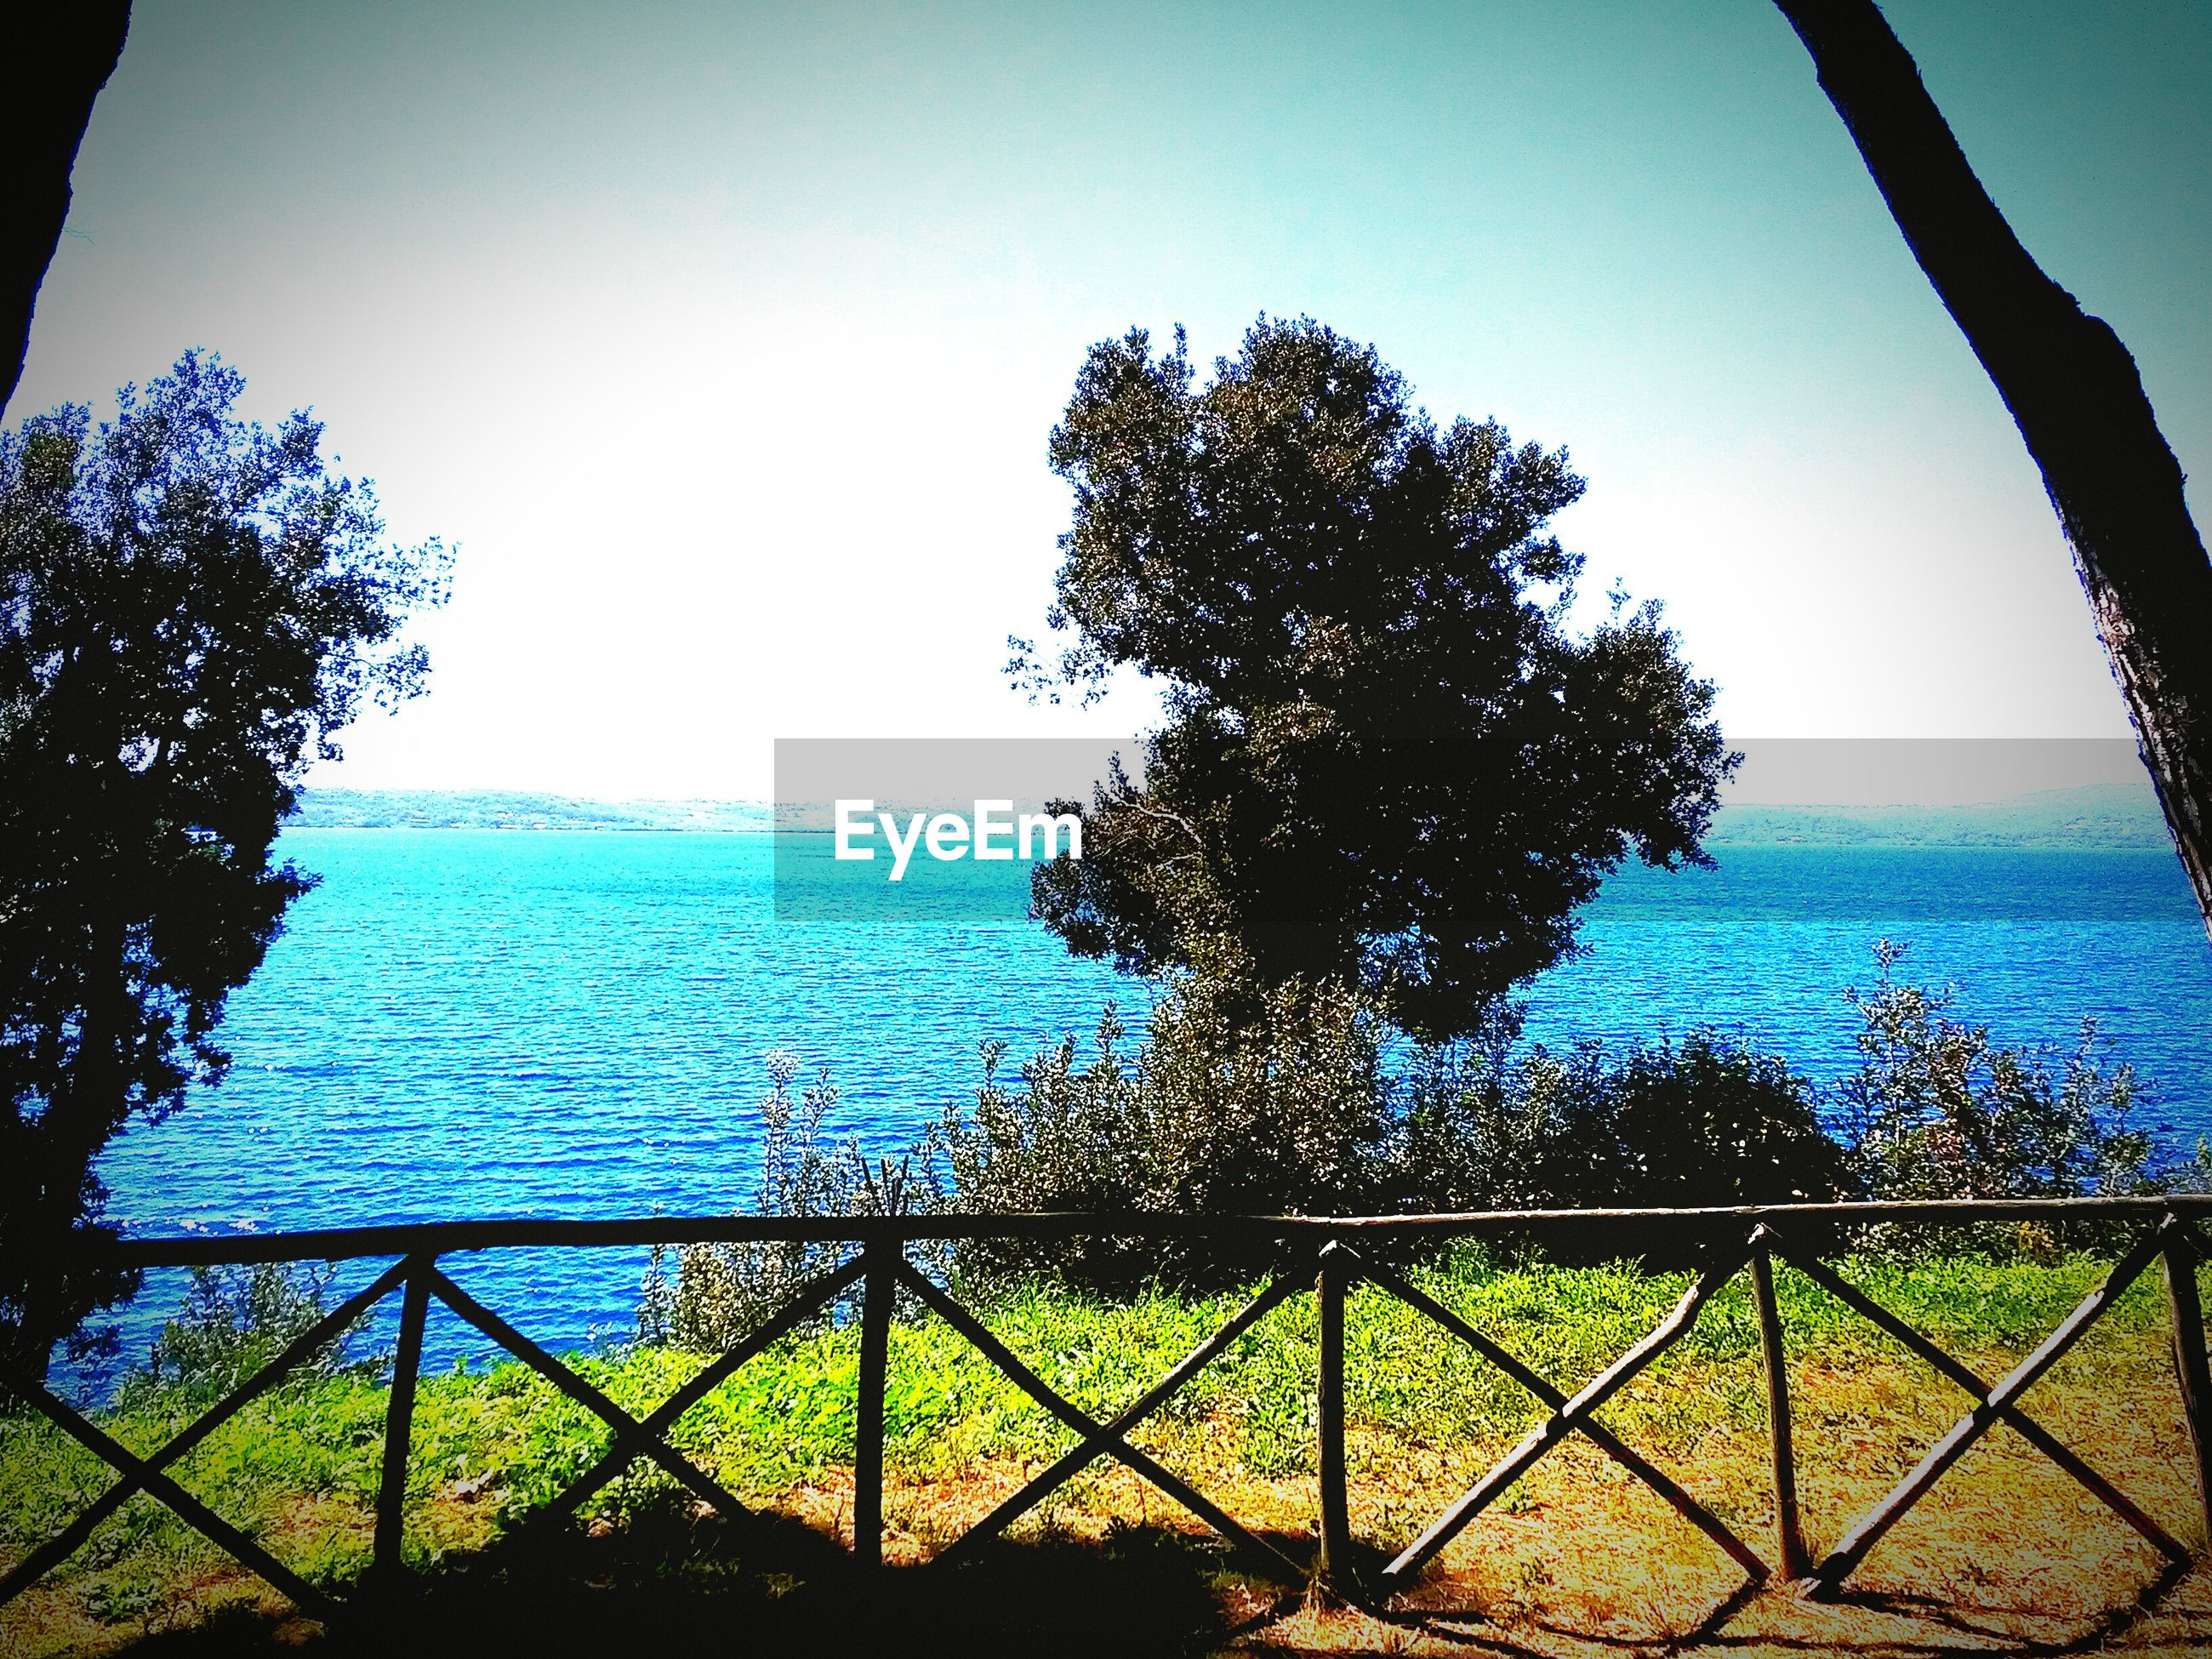 water, tree, railing, clear sky, tranquility, sky, tranquil scene, sea, scenics, nature, beauty in nature, branch, sunlight, blue, growth, day, lake, horizon over water, outdoors, river